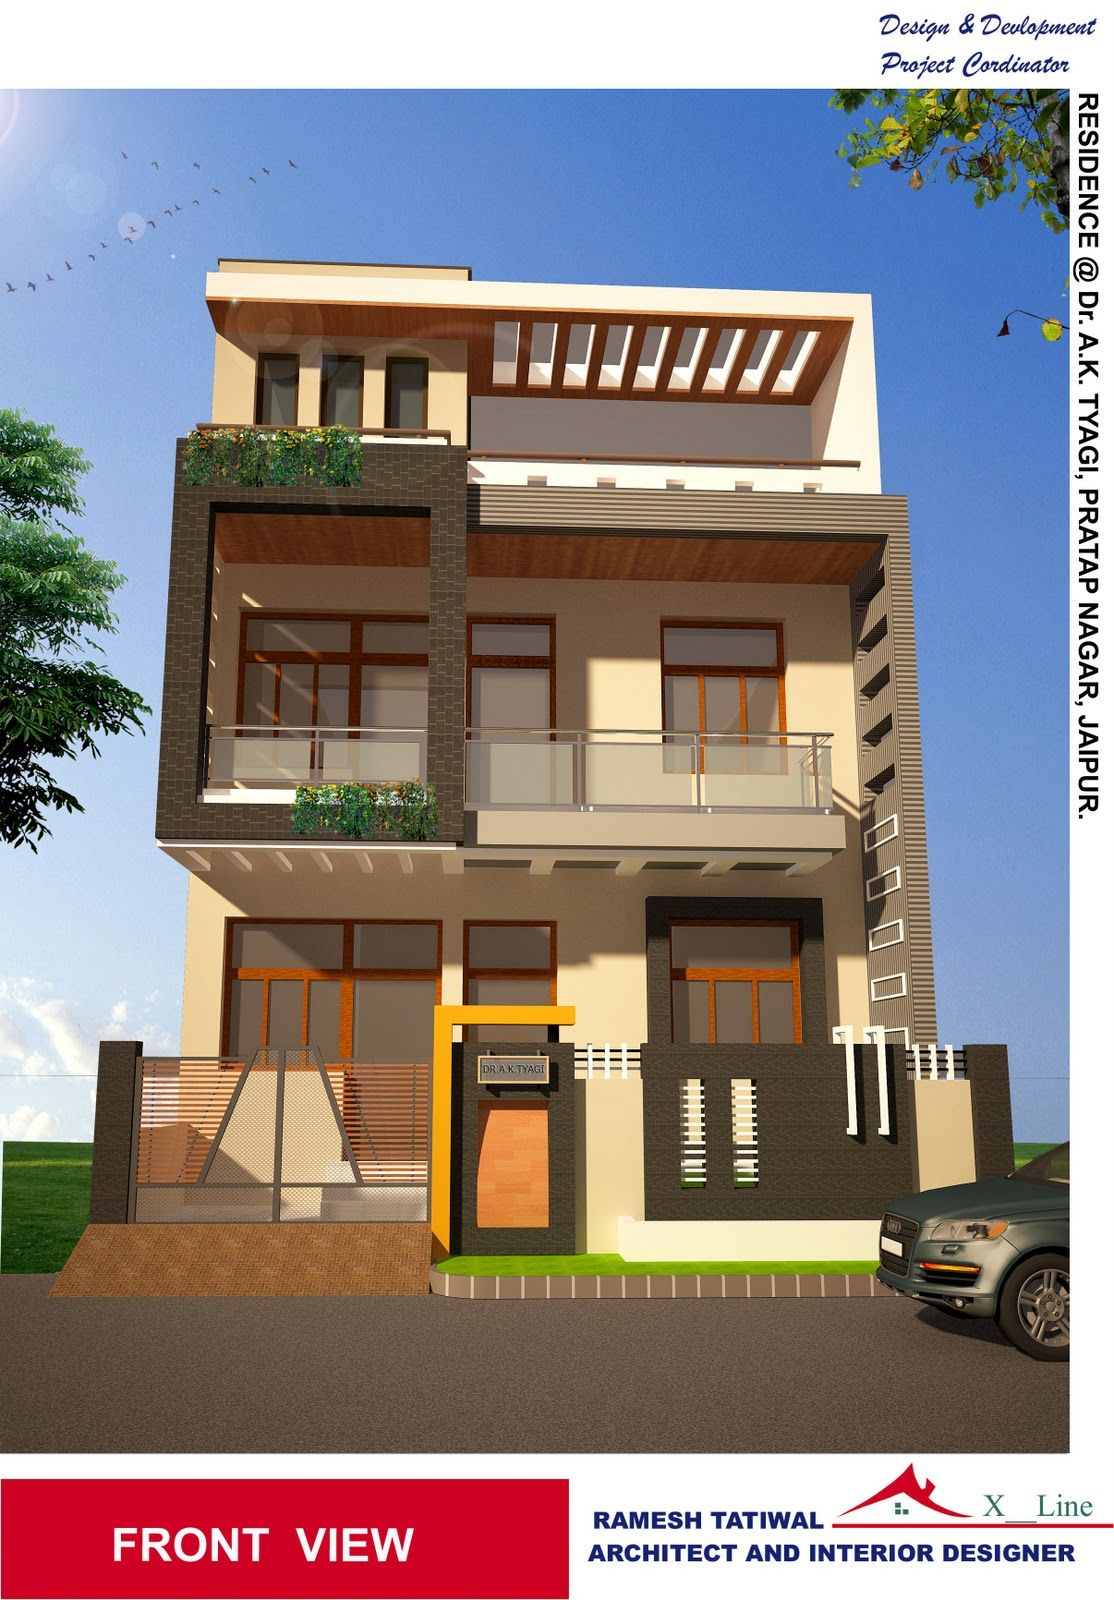 Housedesigns modern indian home architecture design from for New architecture design house